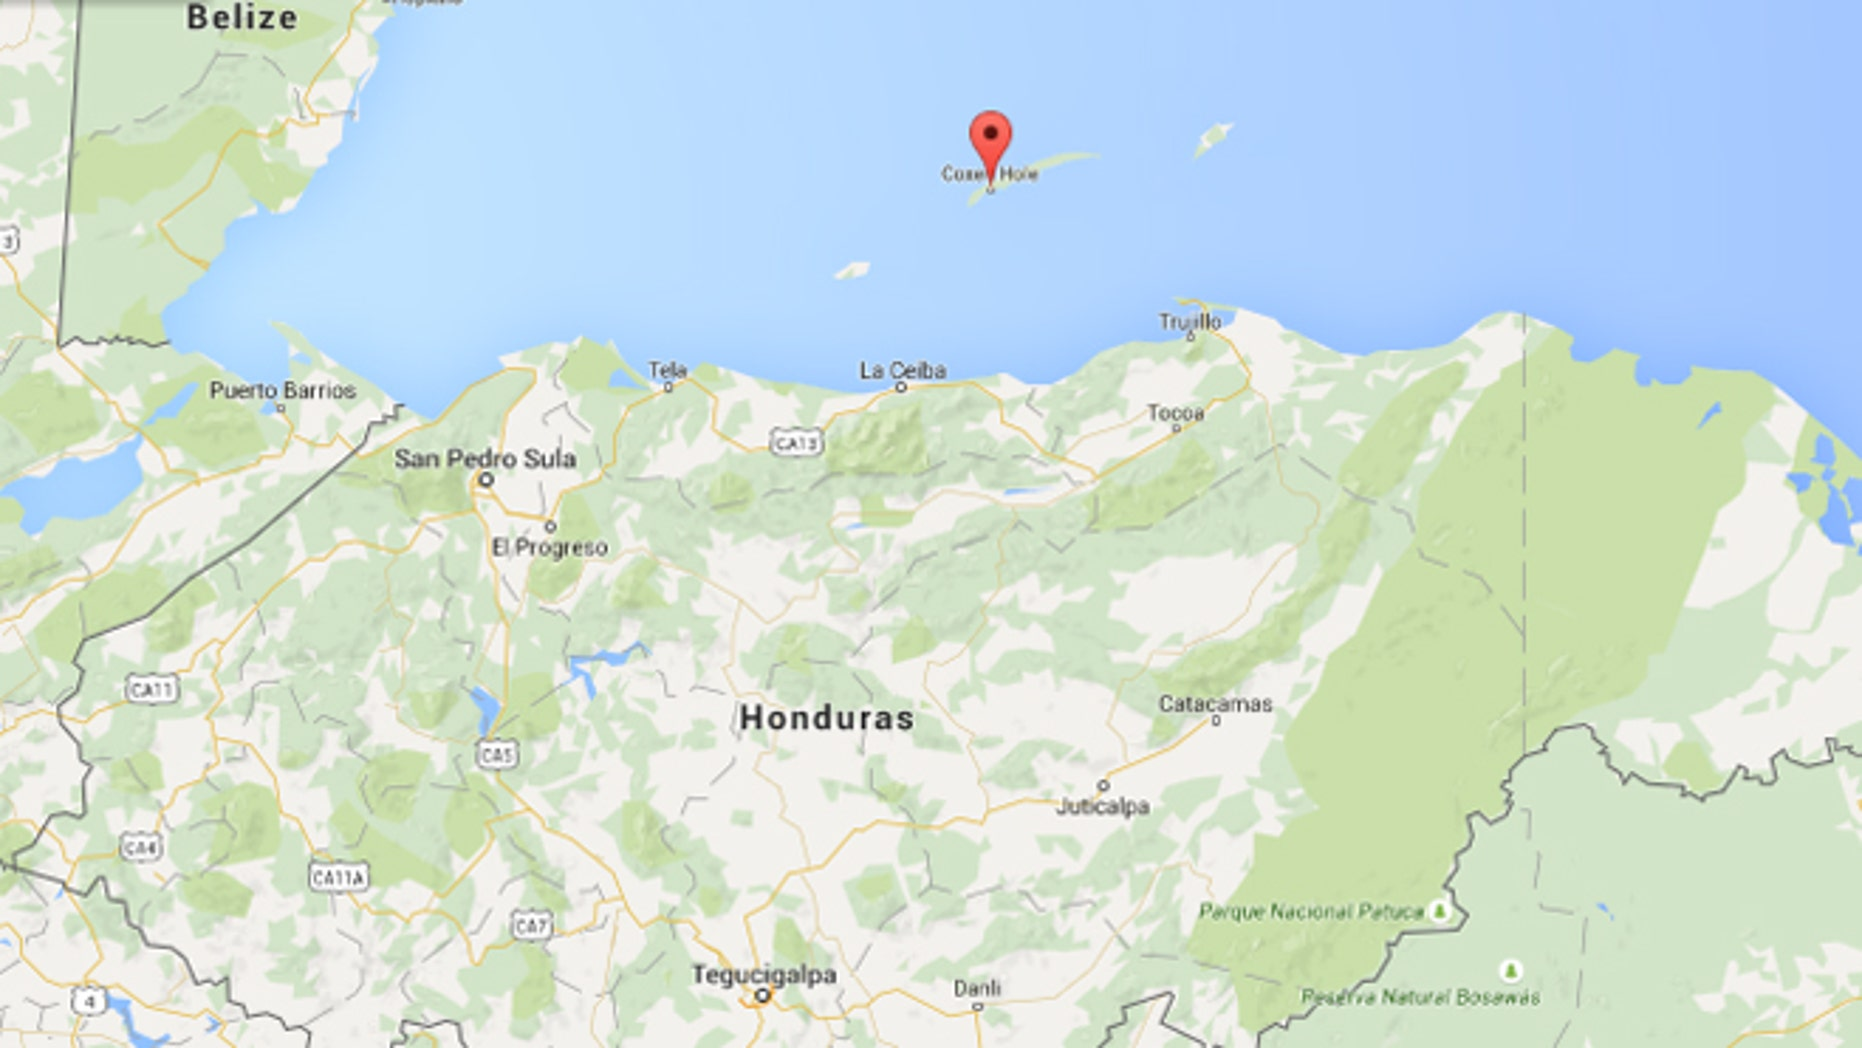 The island of Roatán (with the pin). (Source: Google Maps)